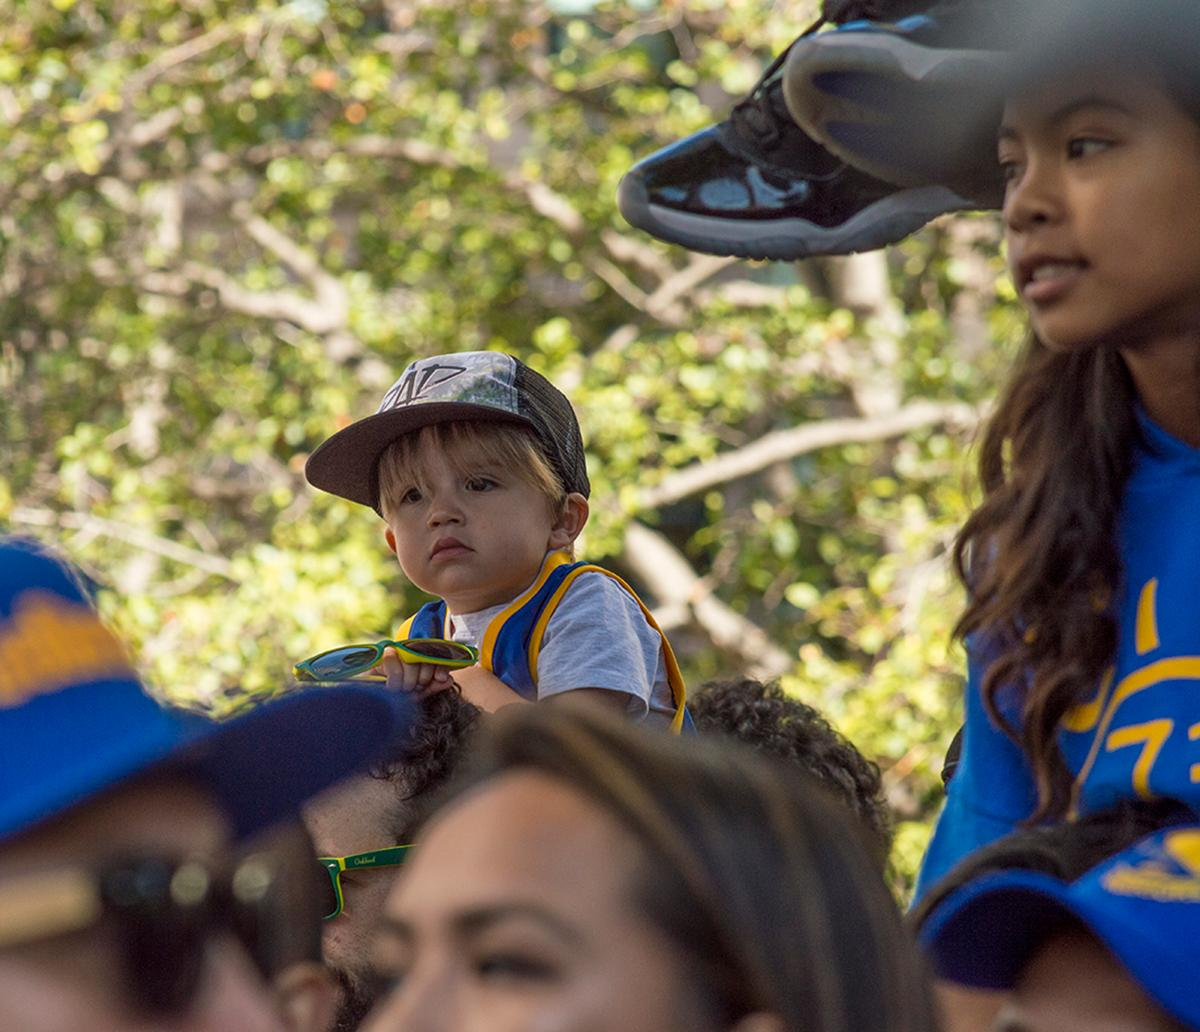 A young fan gets a great view of the Golden State Warriors victory parade in Oakland, California. Fans on 13th Street in Oakland, California. Photo by Emily Gonzalez, Oregon News Lab.